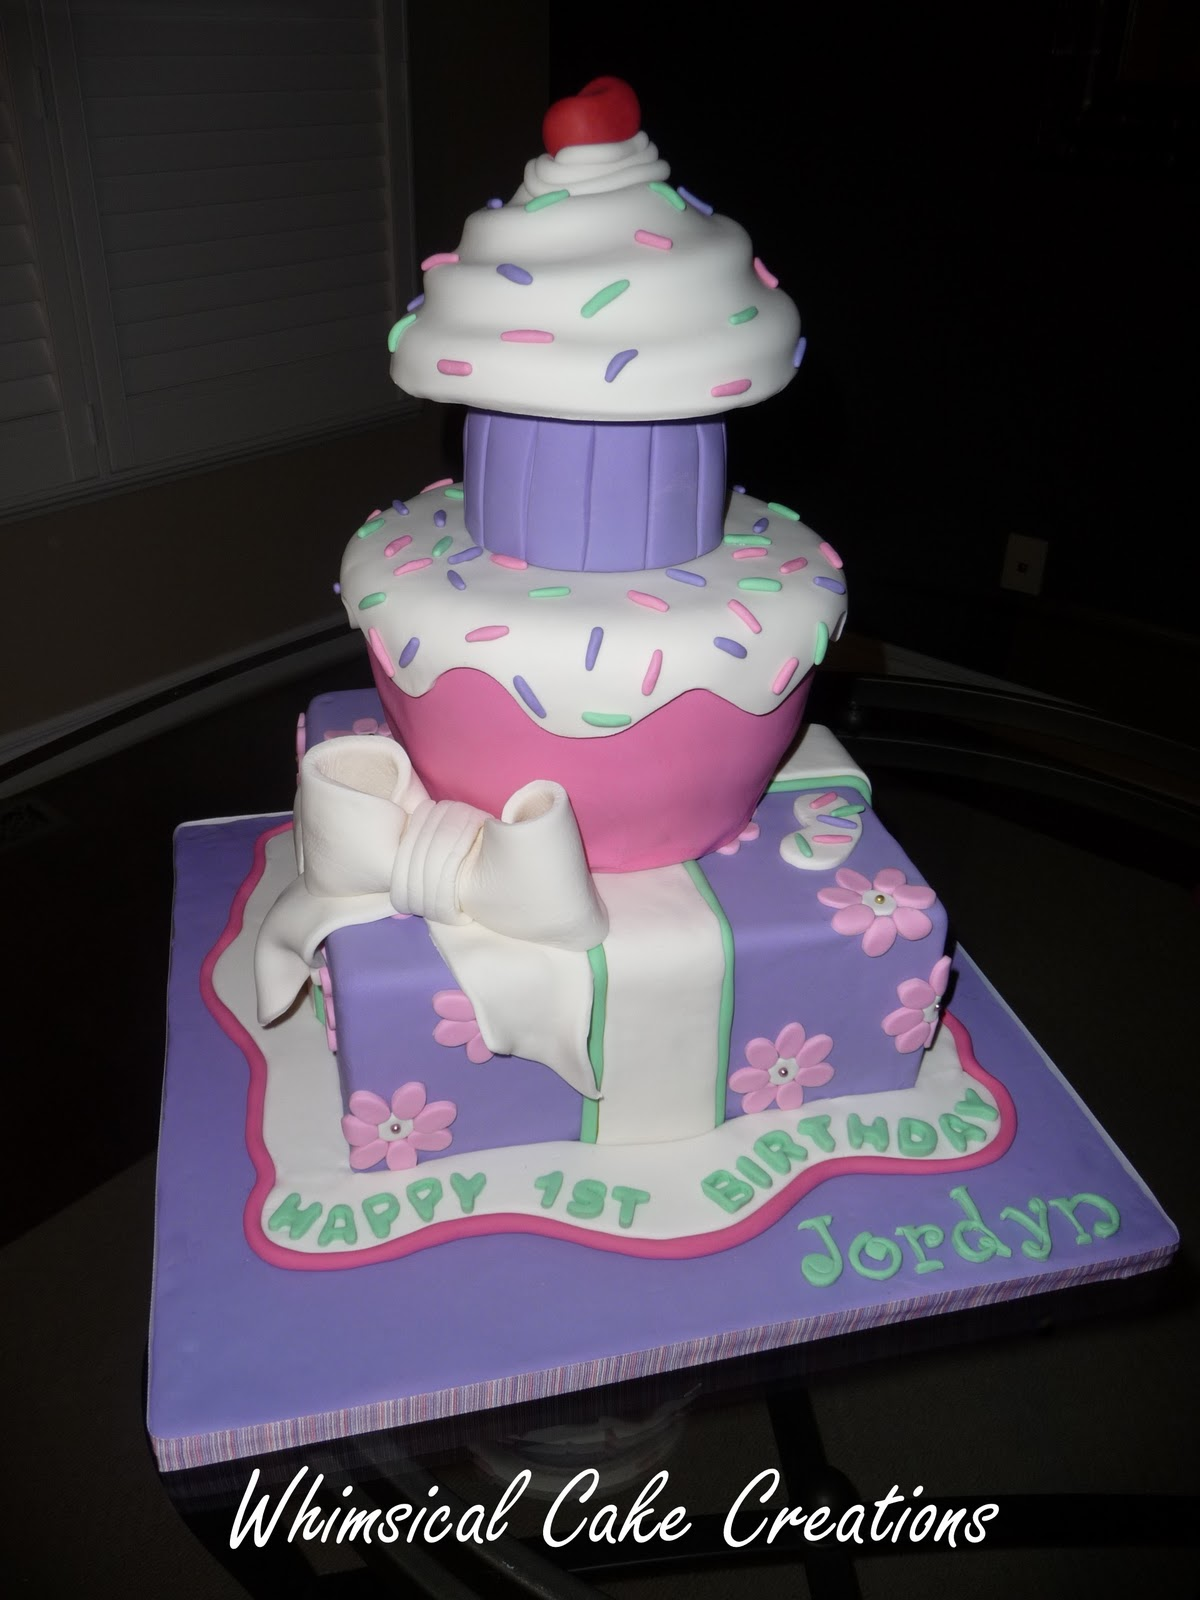 WhimsicalCreationsca 1st Birthday Cake for my Princess